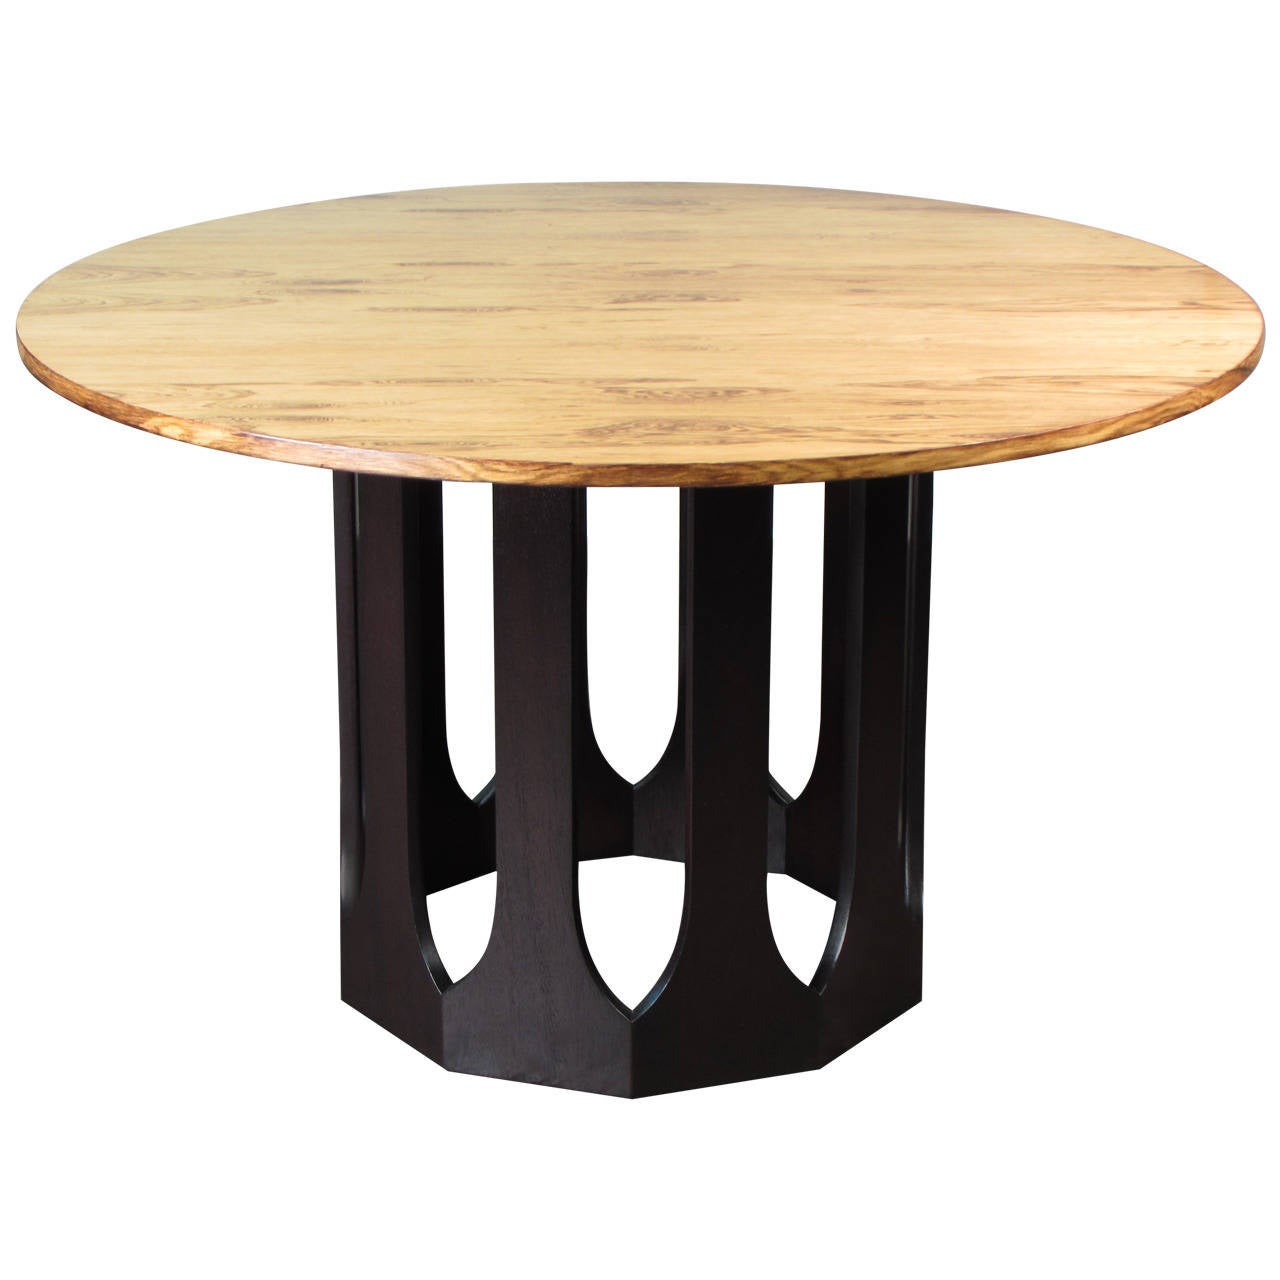 Bleached Rosewood and Mahogany Dinette Table by Harvey Probber, 1965